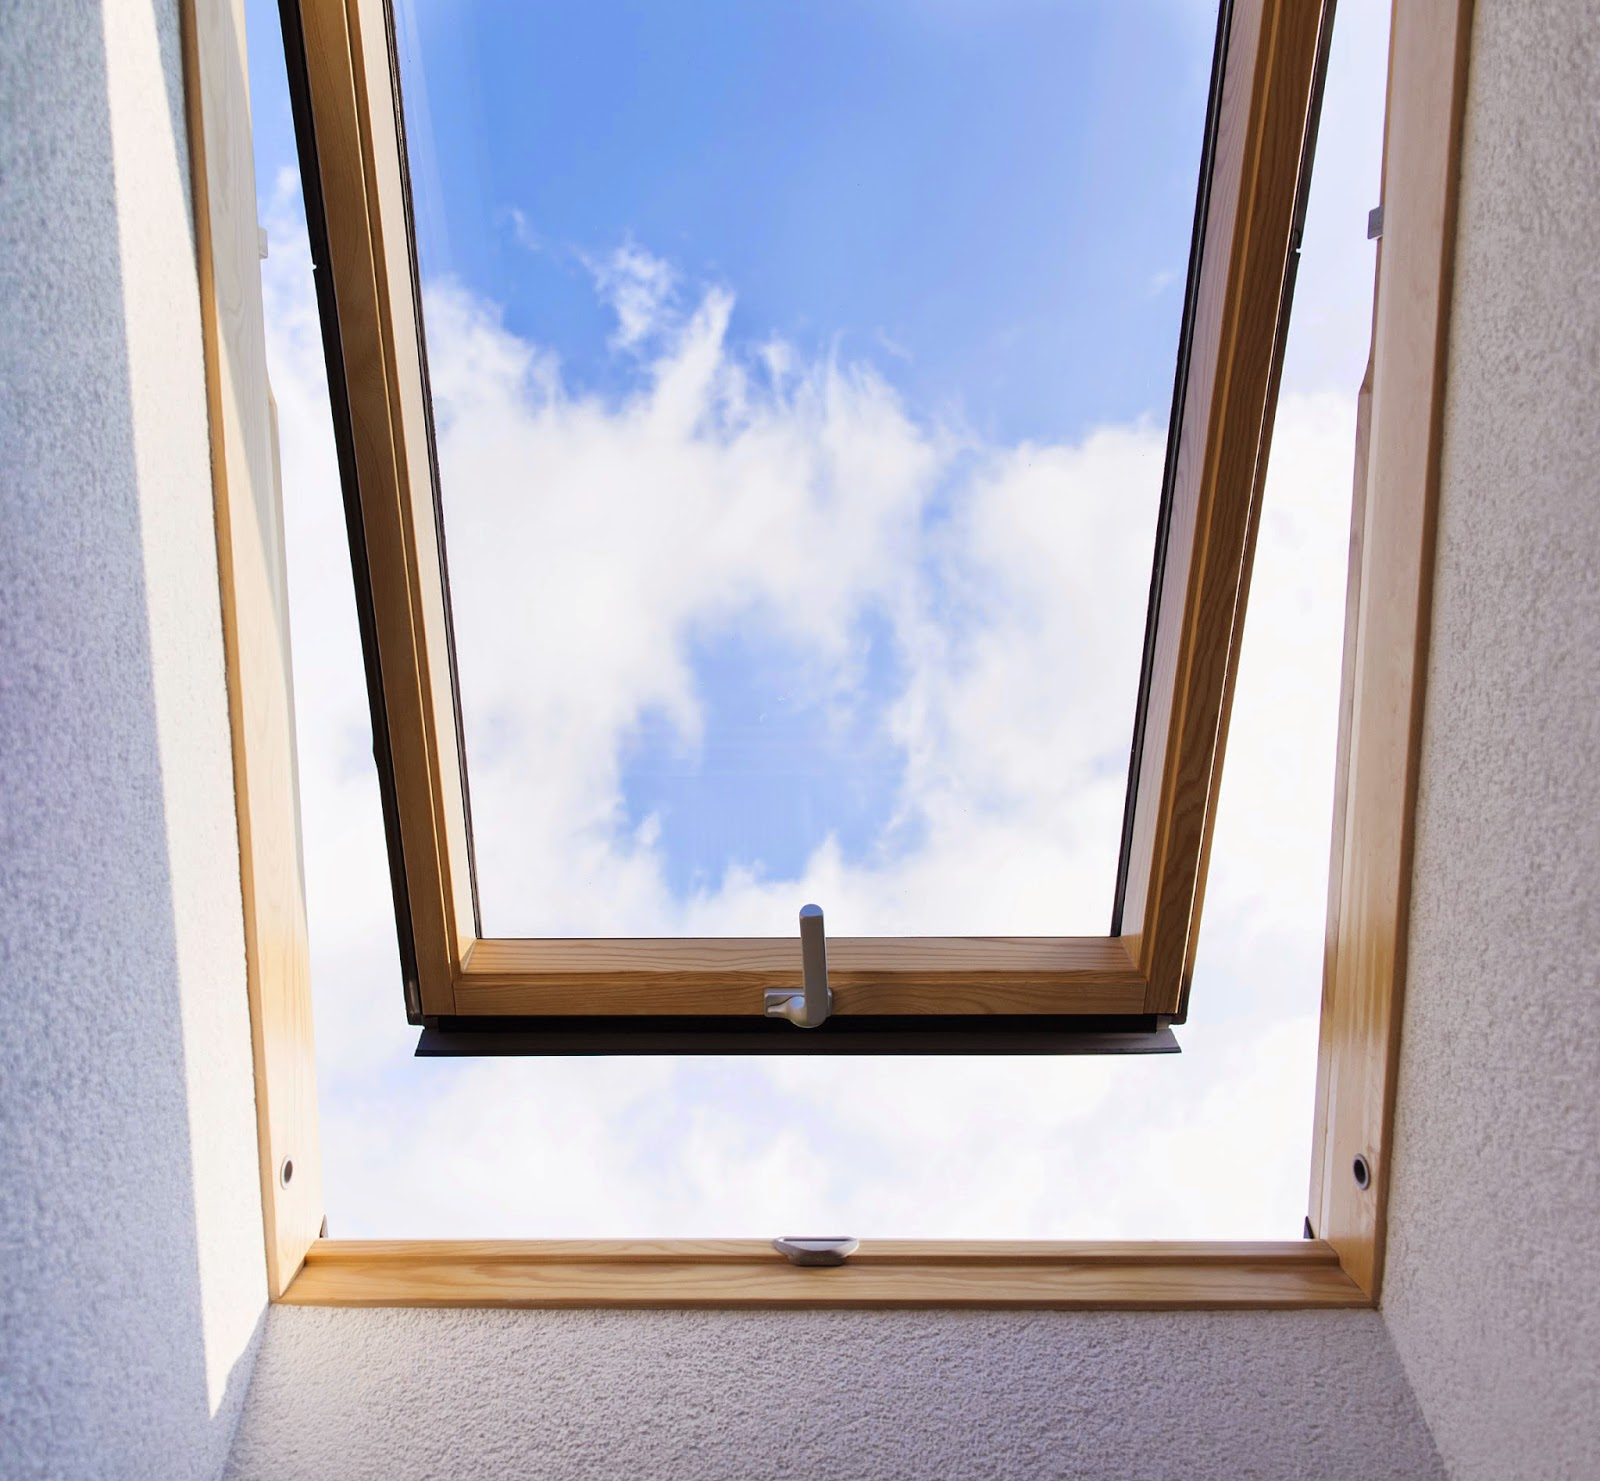 Things to consider before installing skylights in Connecticut